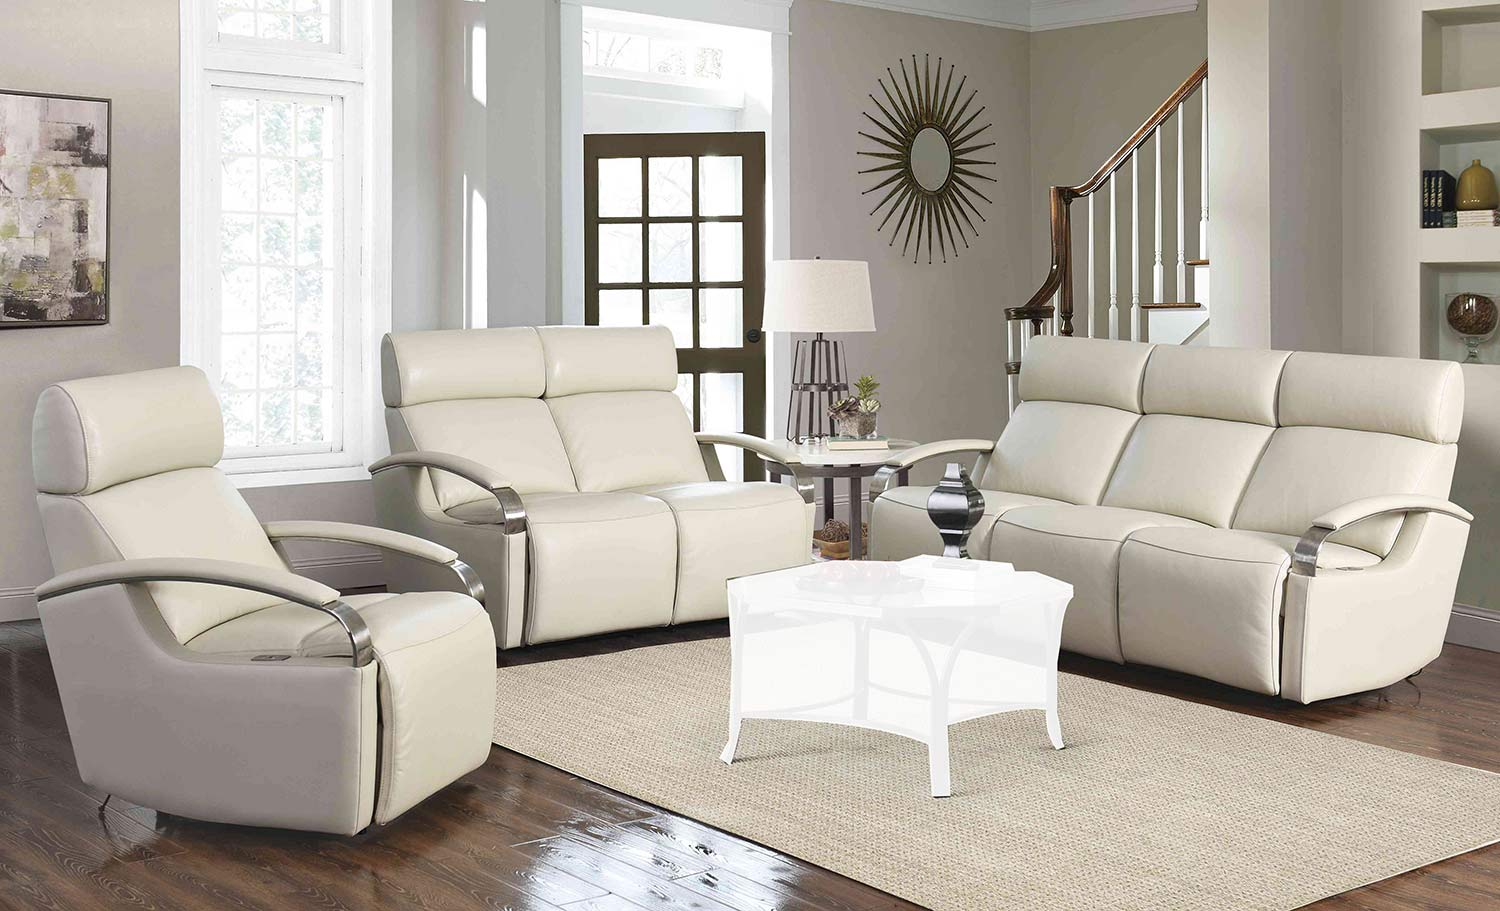 Barcalounger Cosmo Power Reclining Sofa Set with Power Head Rests - Cashmere White/Leather Match